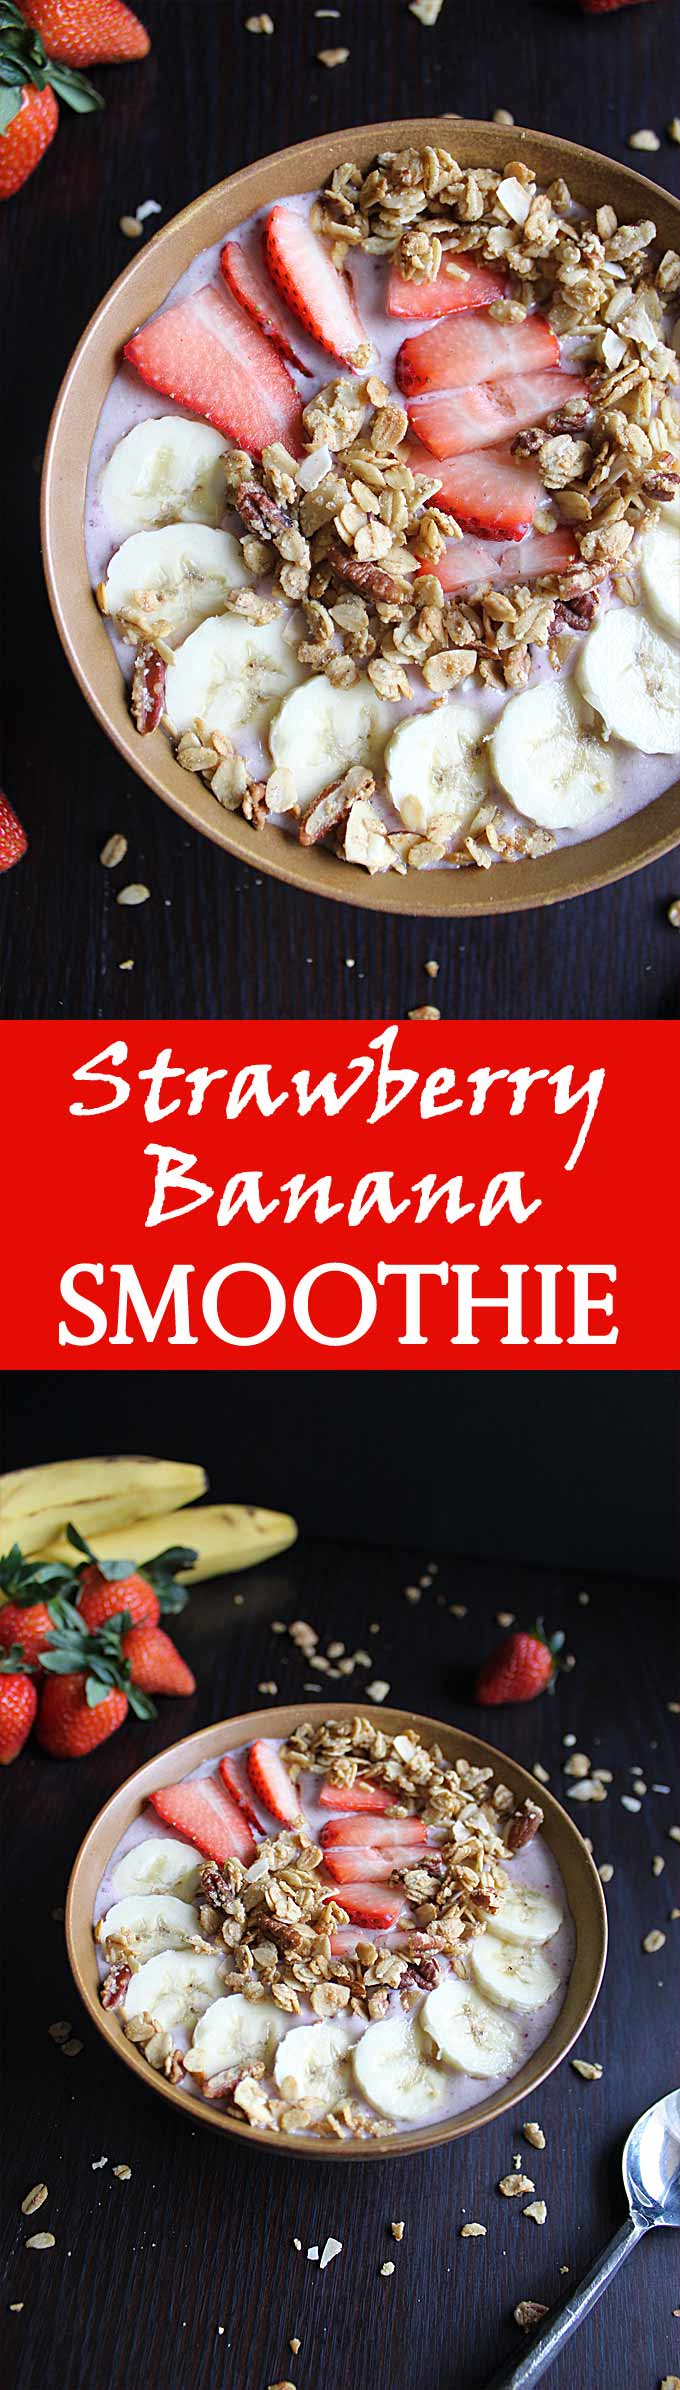 Healthy Strawberry Banana Smoothie Bowl   Protein Smoothie   Without Yogurt   Low Calorie   Breakfast   Post Workout   Recipe